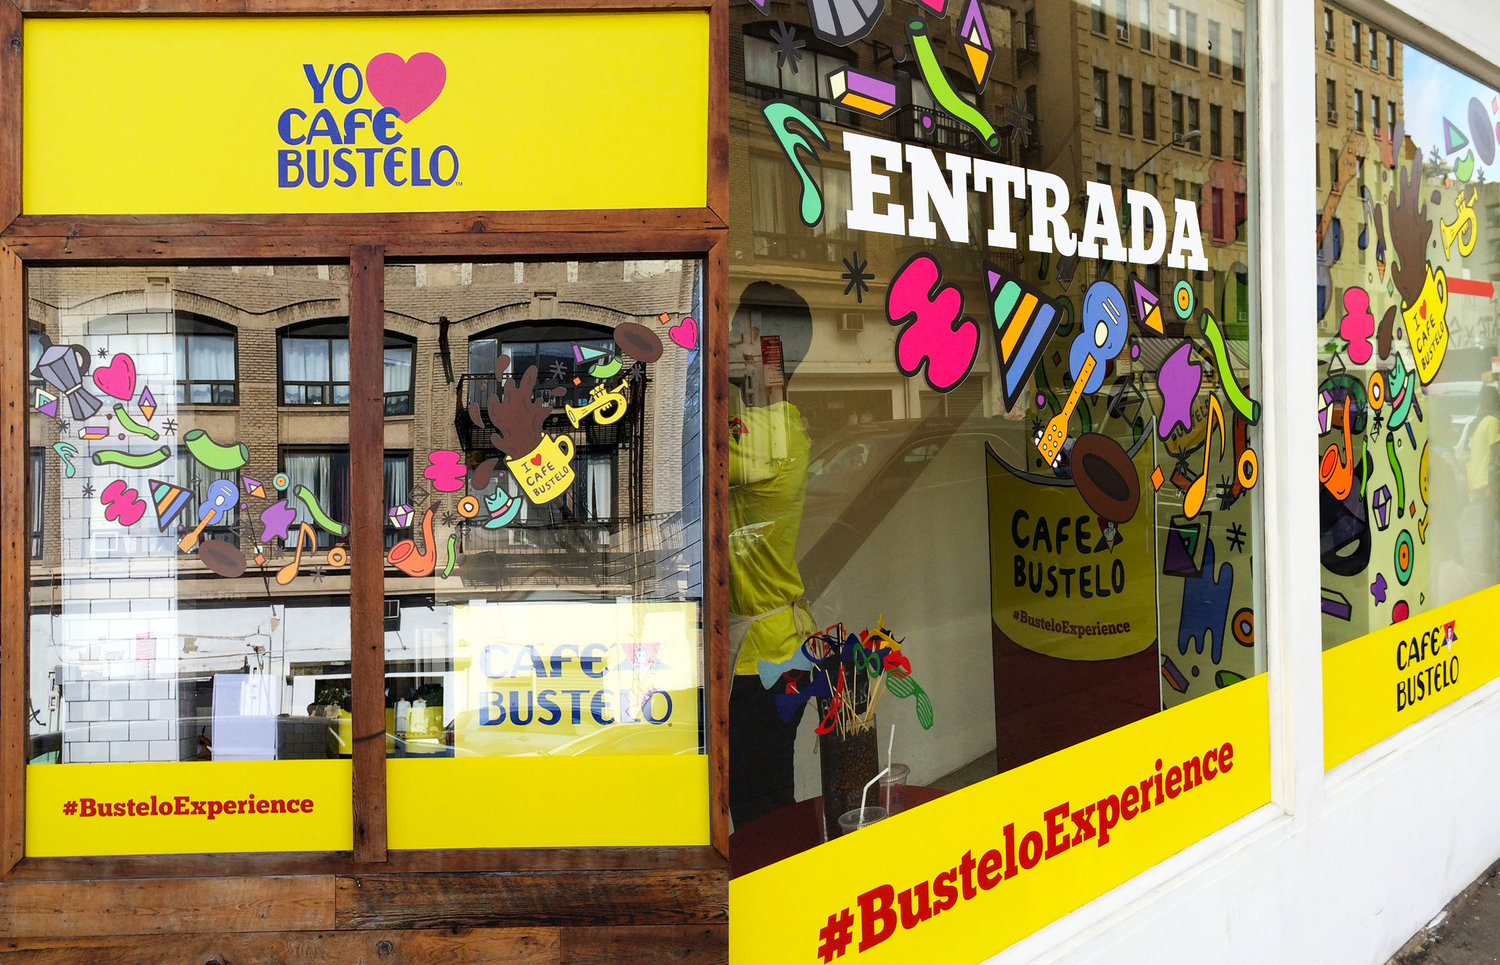 cafebustelo_windowinstallation02.jpg